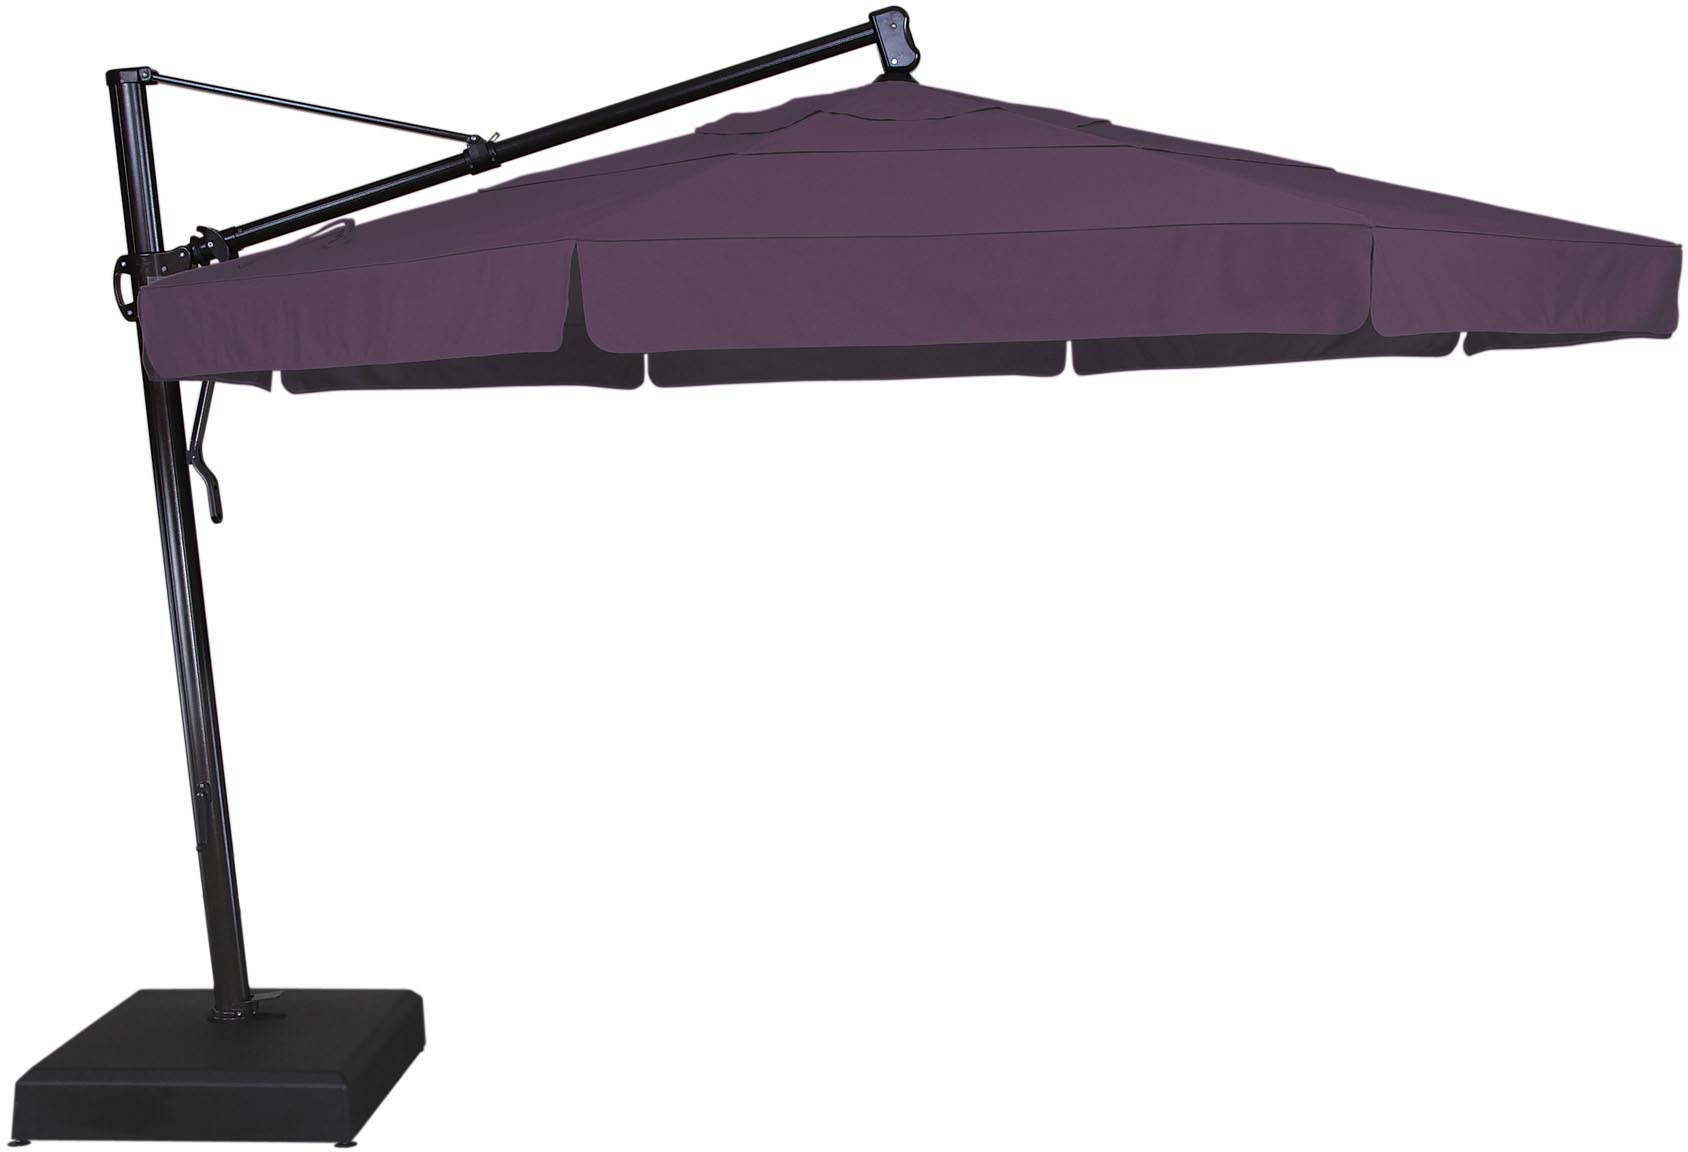 Cantilever Umbrella In Violet With Black Stand For Inspiring Patio Furniture Ideas